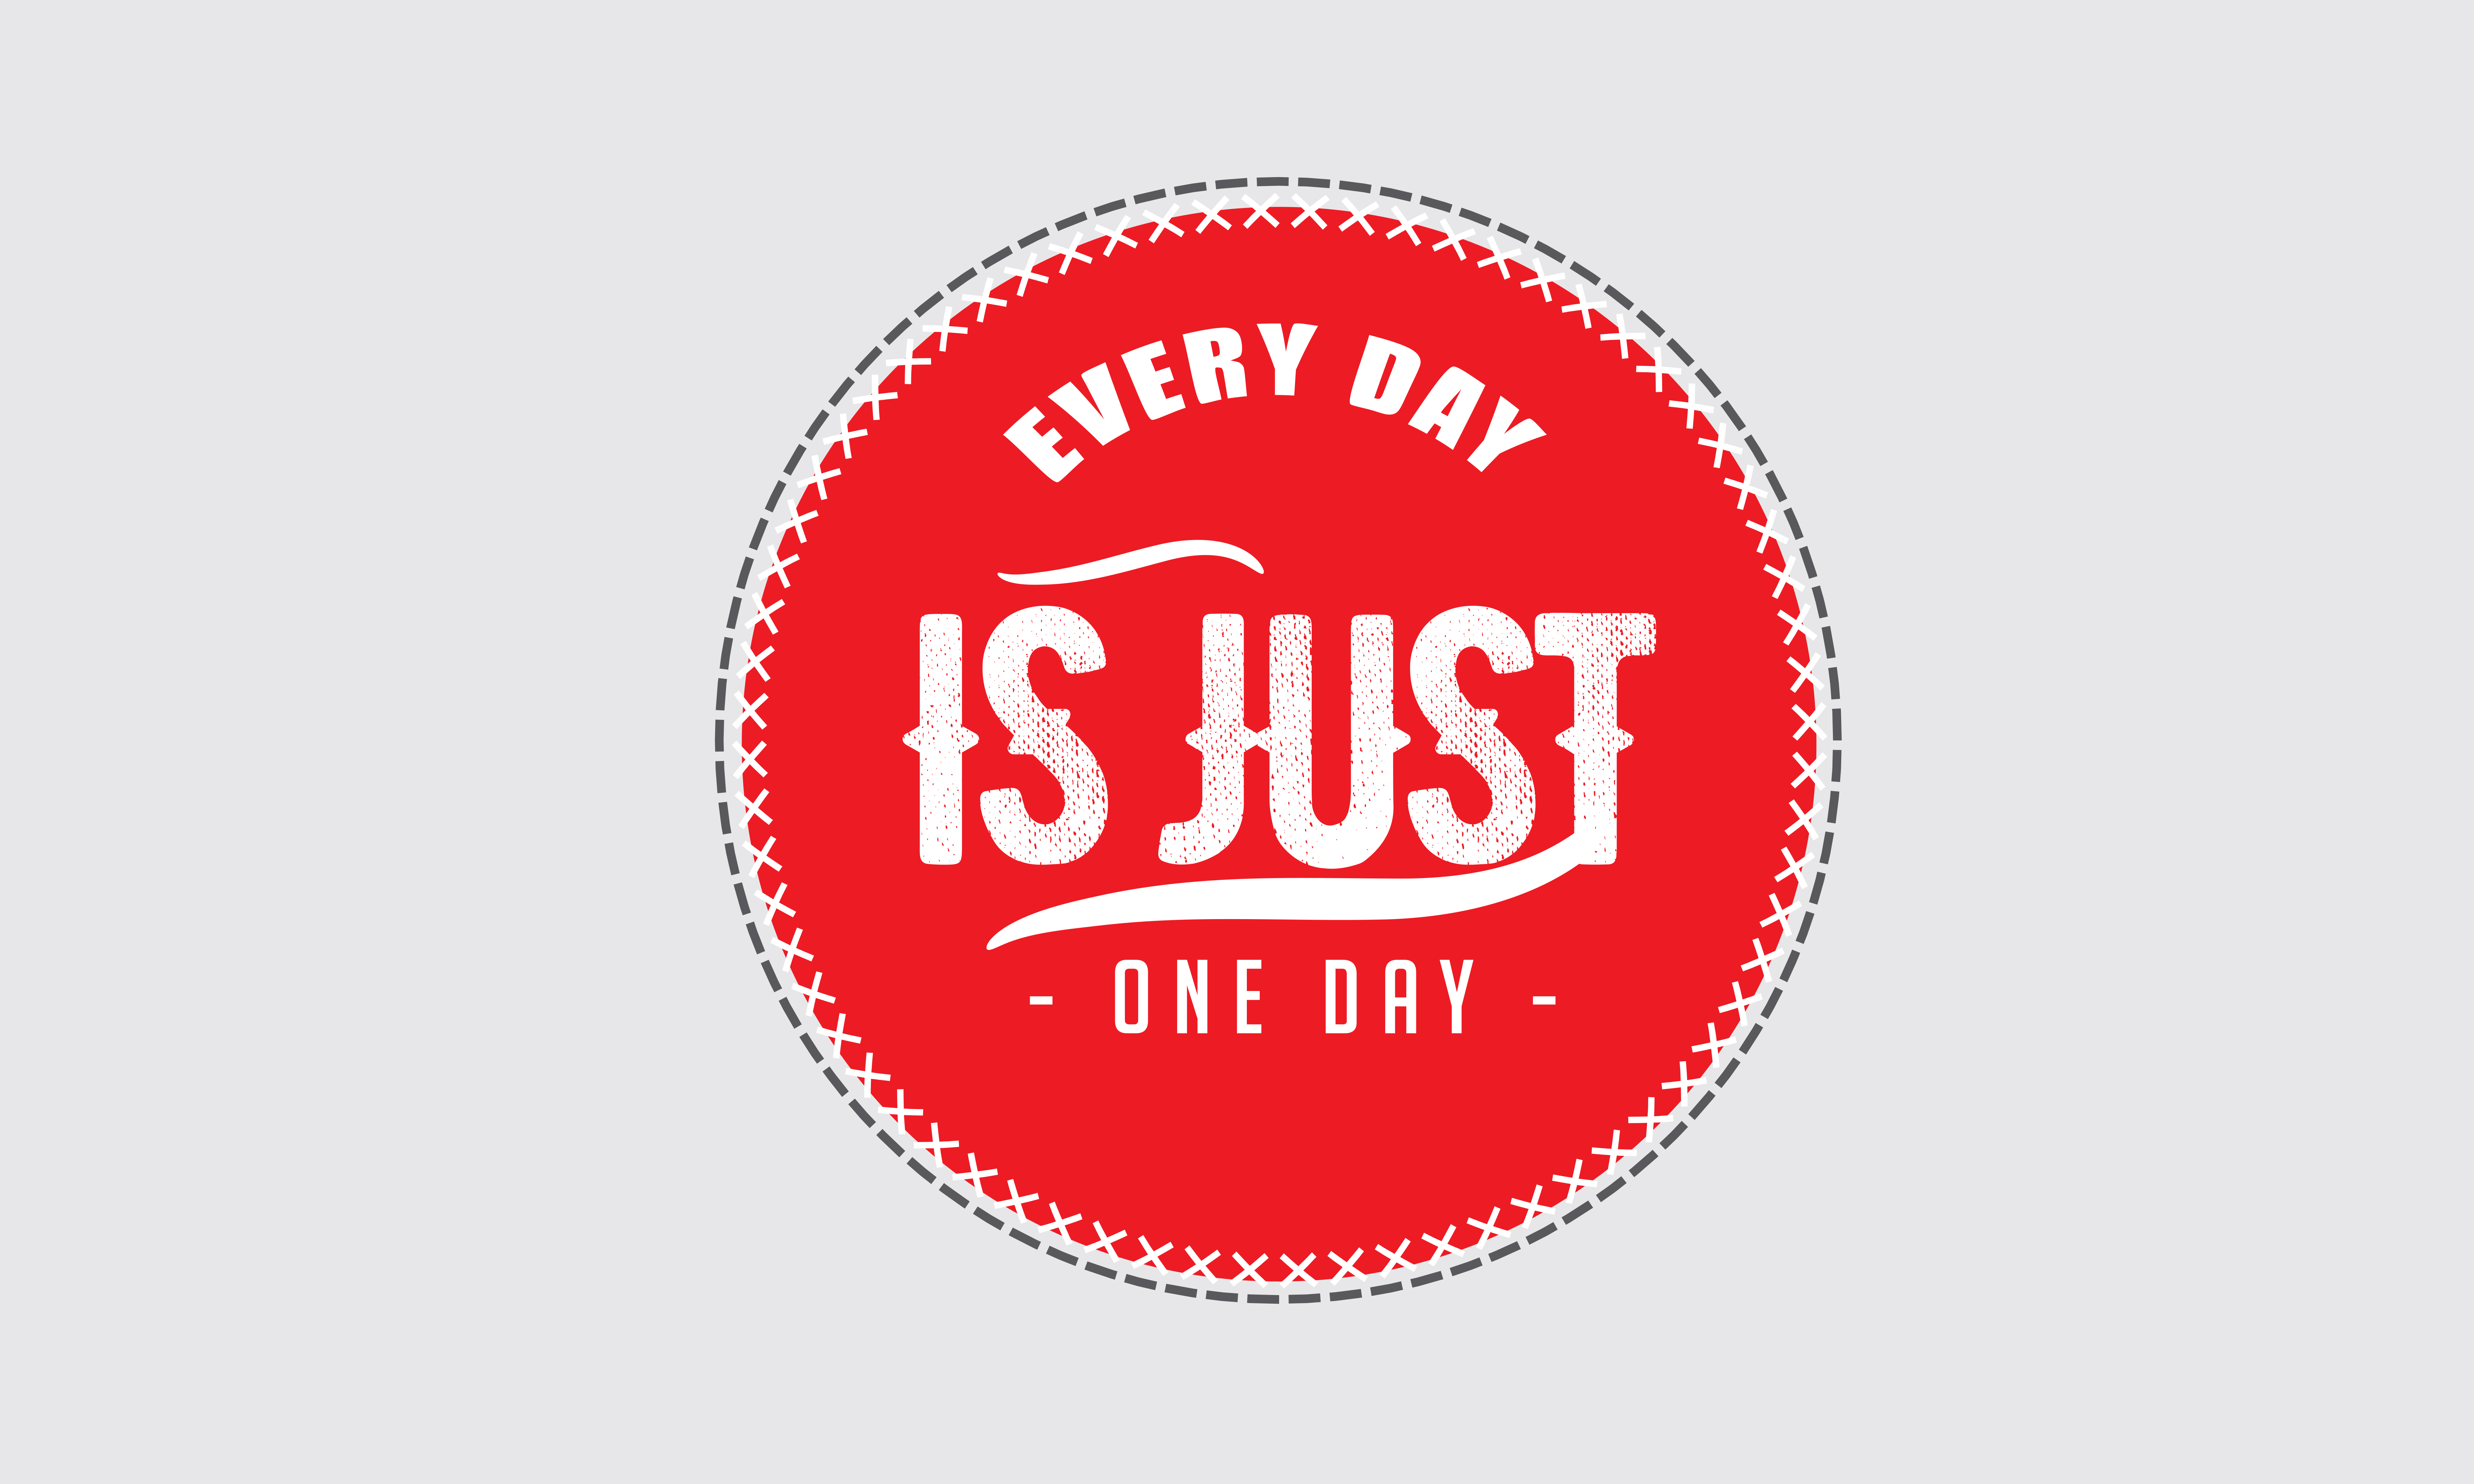 Download Free Just One Day Graphic By Baraeiji Creative Fabrica for Cricut Explore, Silhouette and other cutting machines.